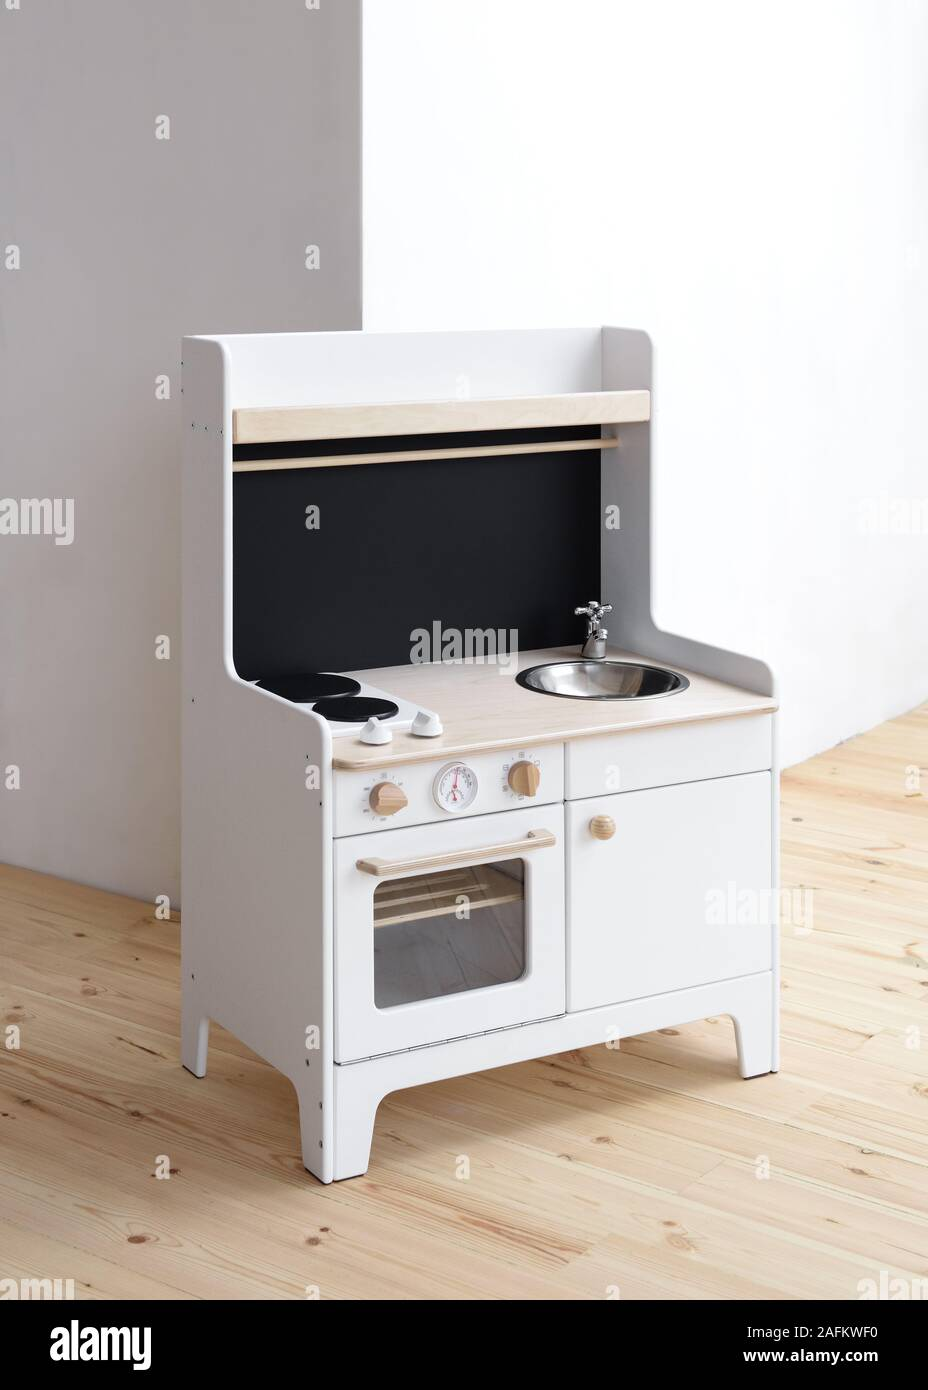 Toy Furniture For Kids White Wooden Play Kitchen With Stove Sink